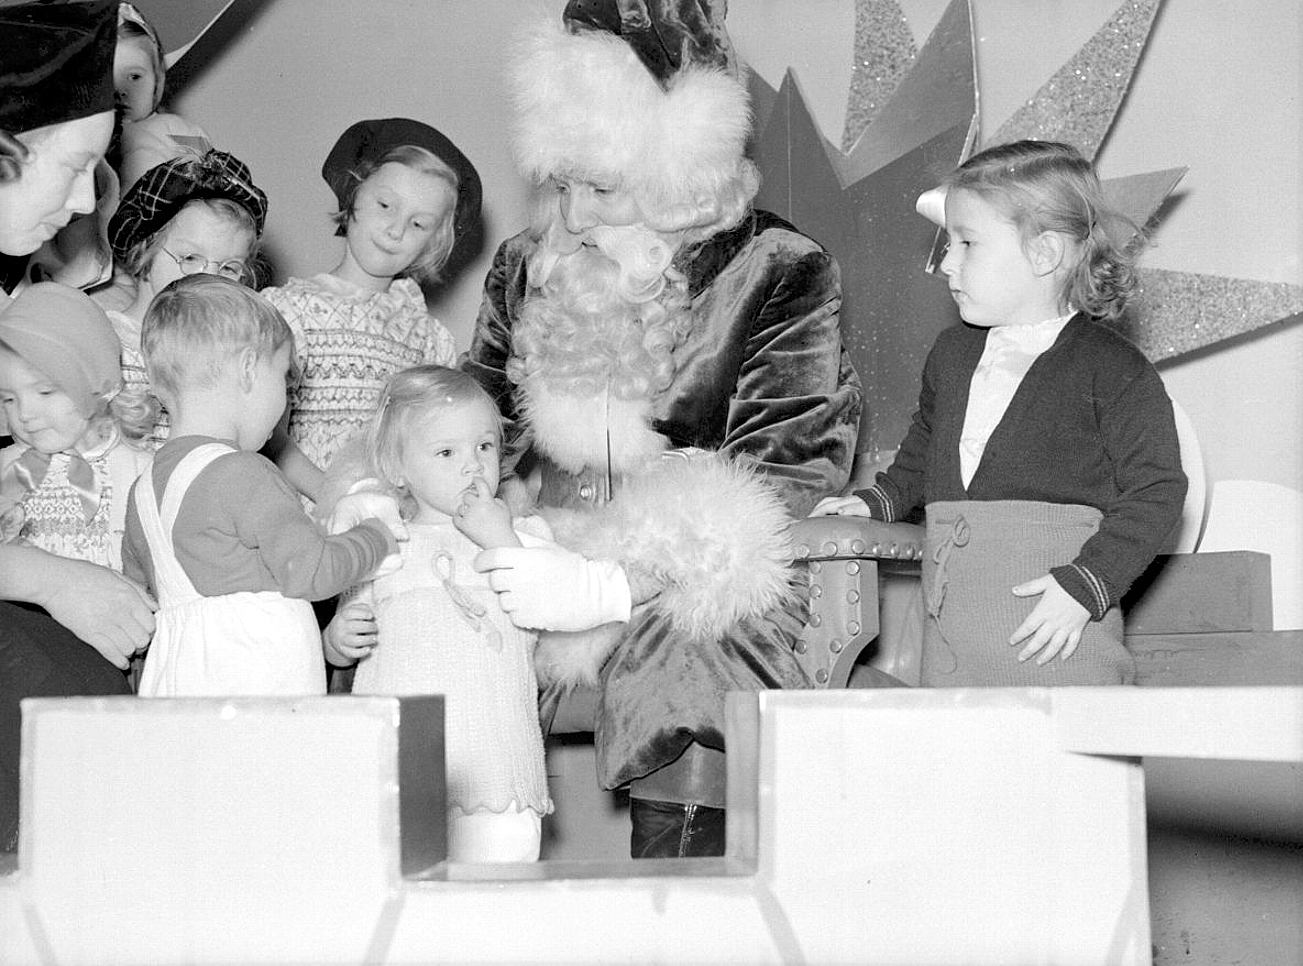 Children visiting Santa Claus, Eaton's department store, St. Catherine Street, Montreal, Canada, 1941